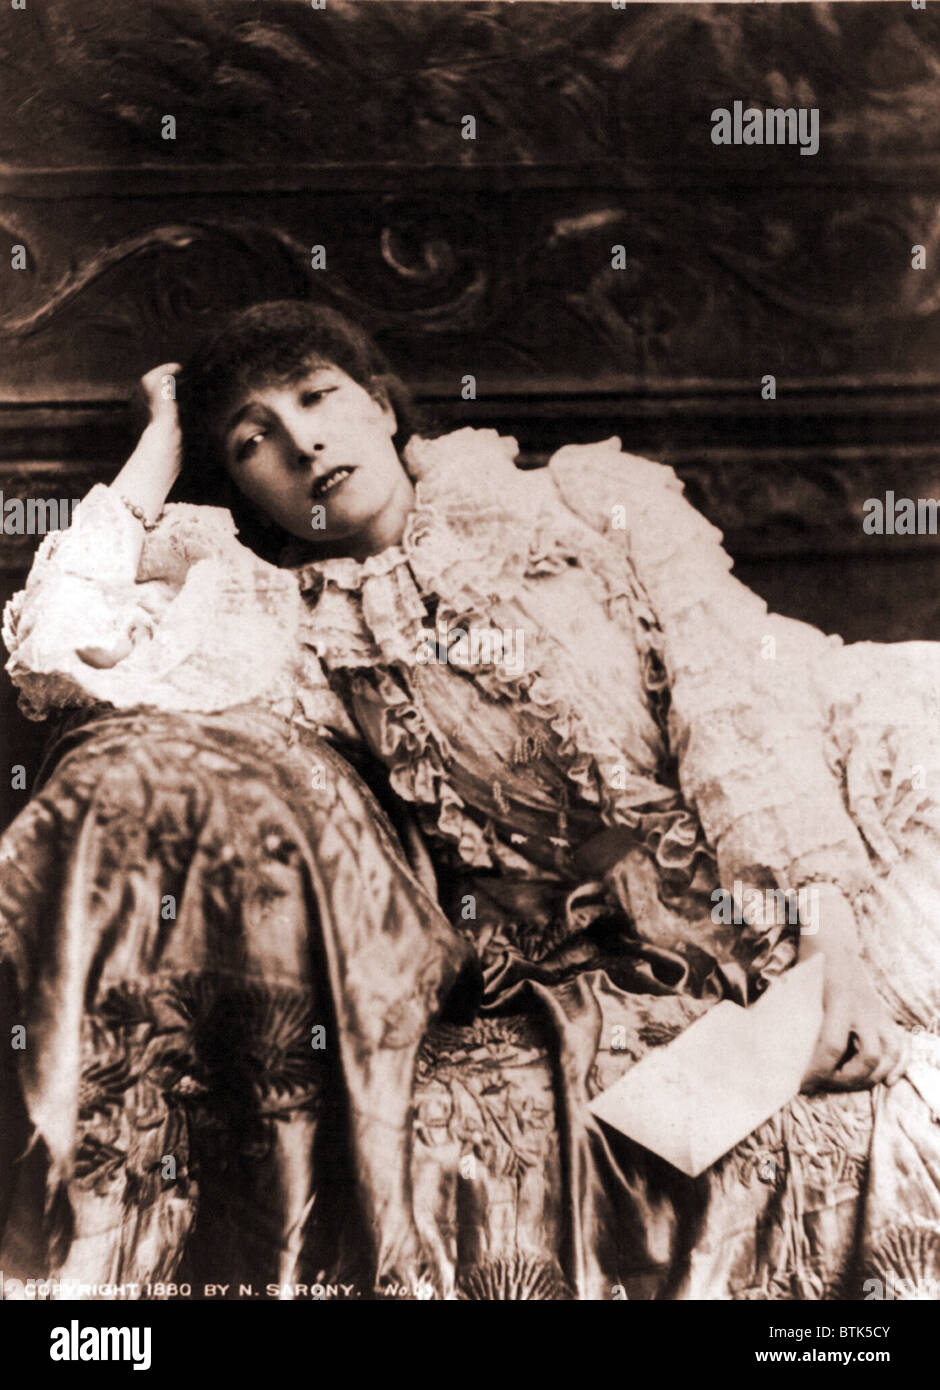 Sarah Bernhardt (1844-1923), French actress, reclining on a divan in an 1880's portrait. - Stock Image